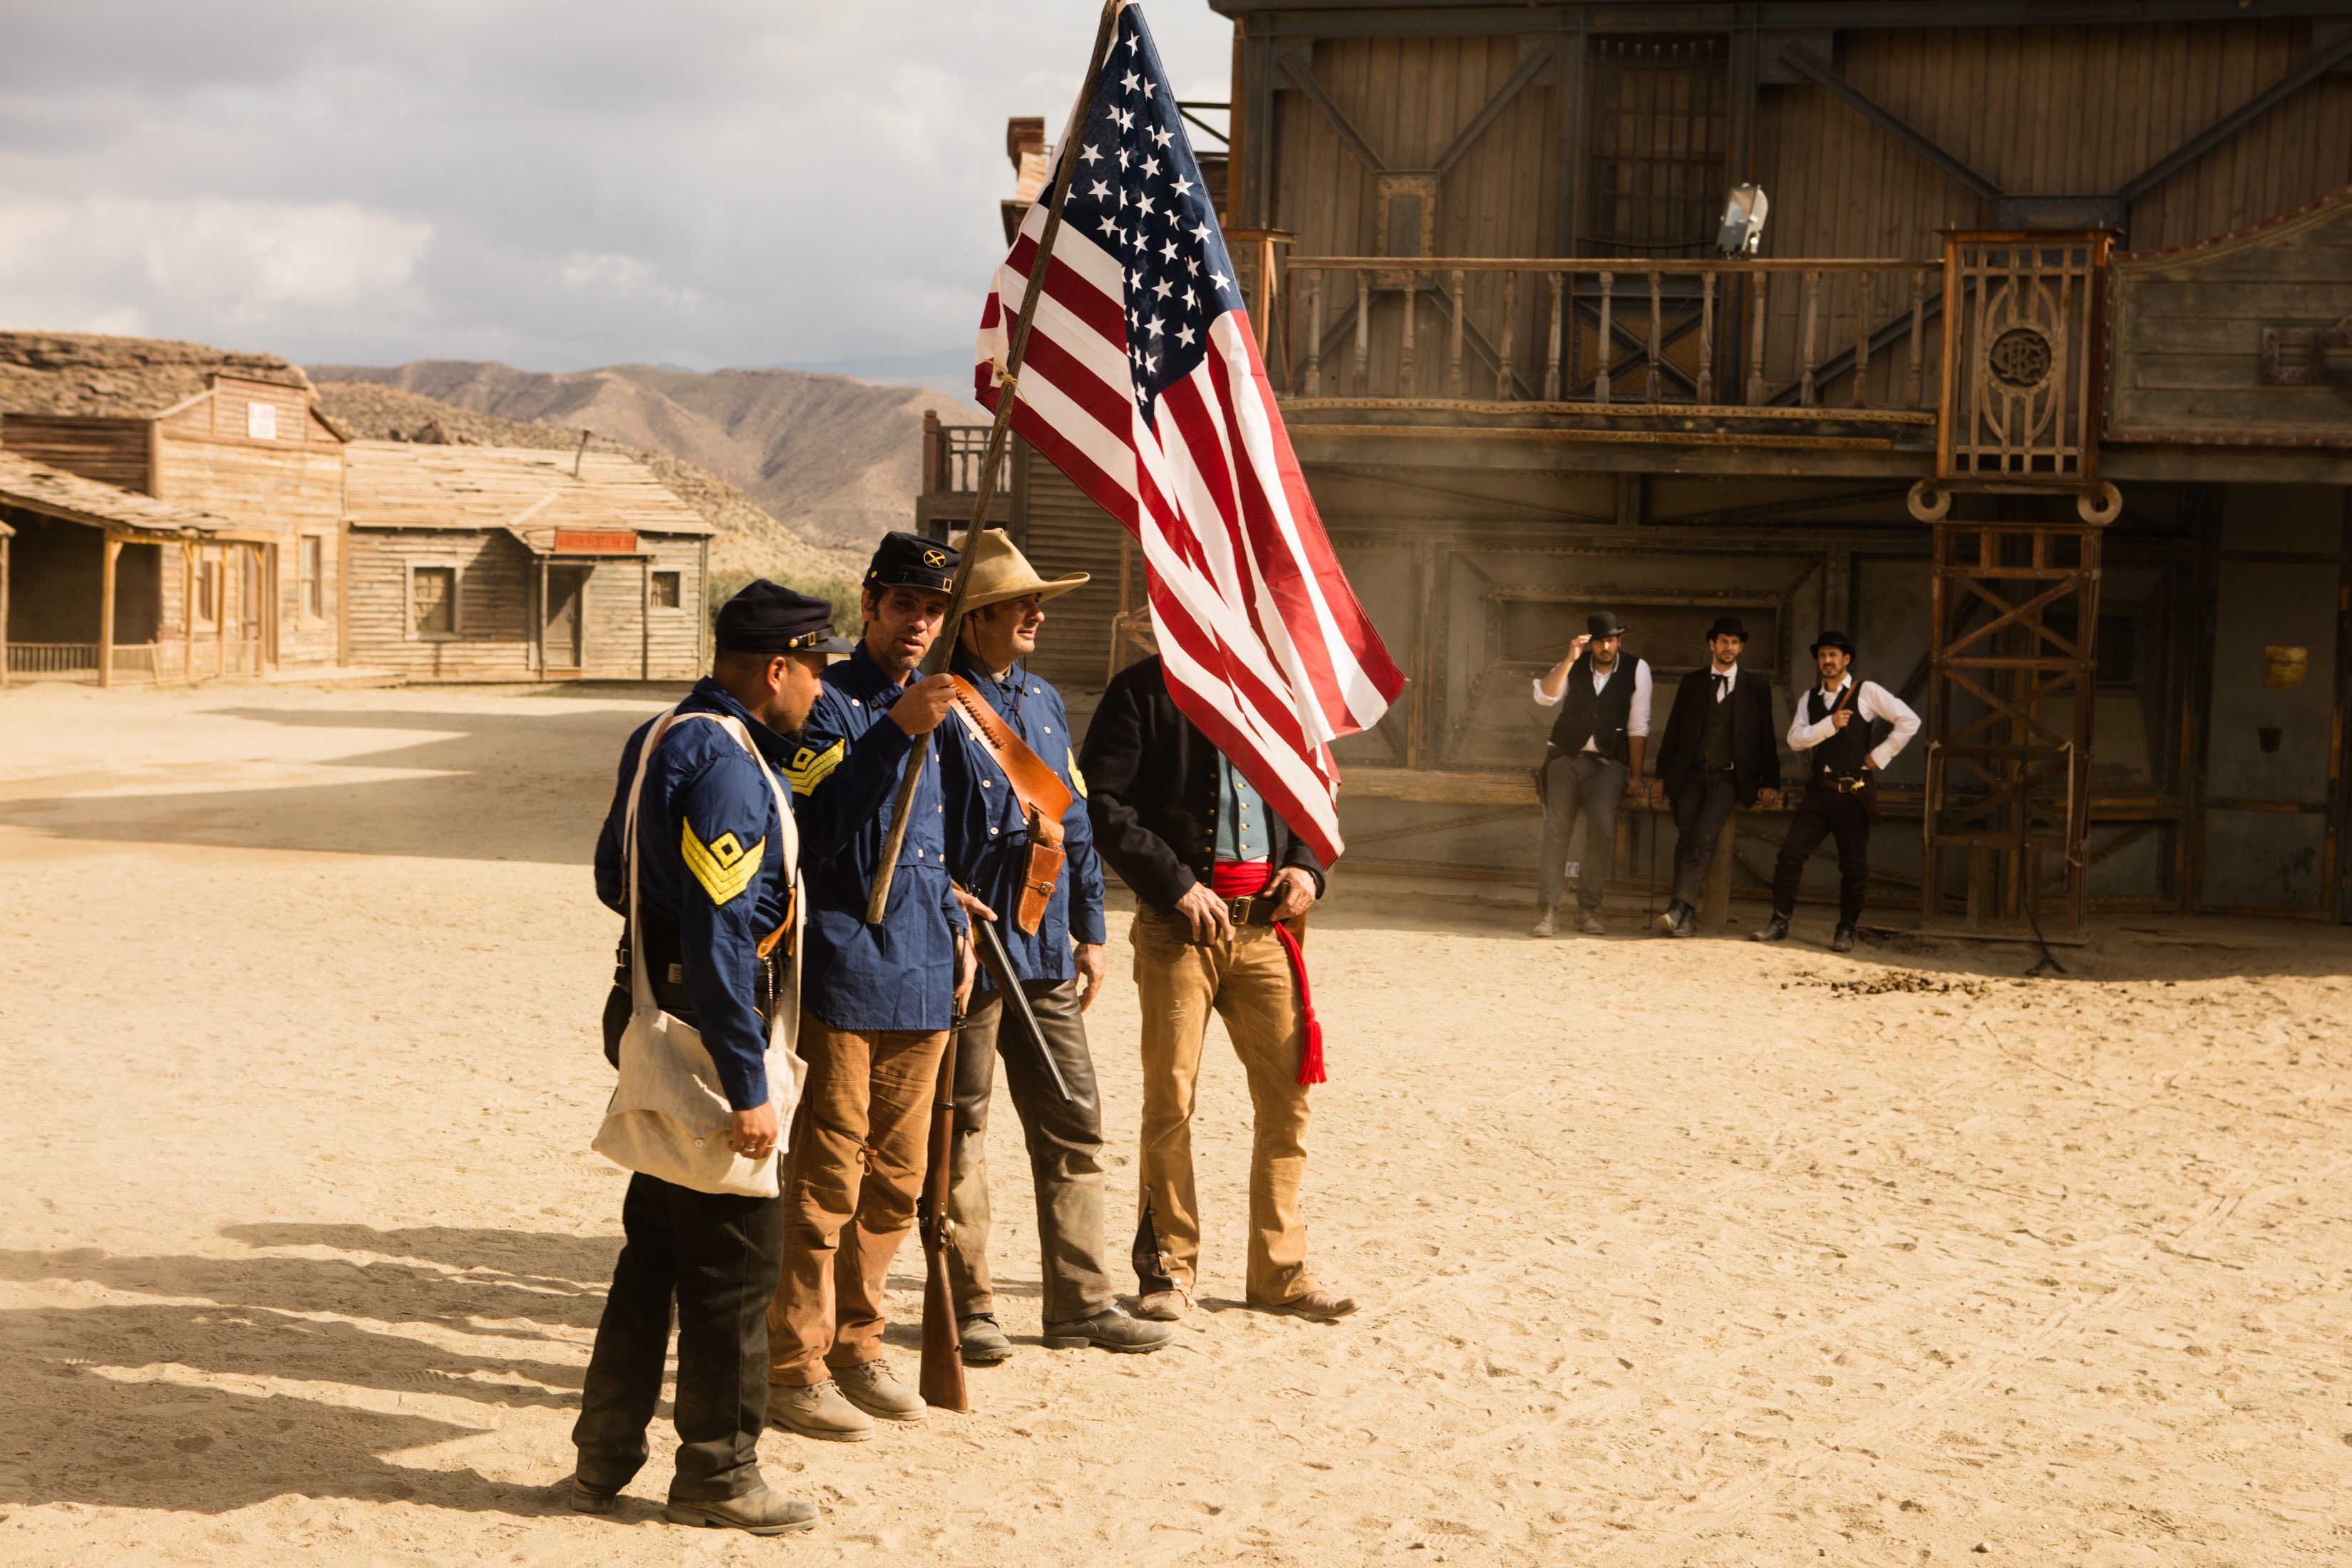 The Ultimate Western, Fort Bravo/Texas Hollywood